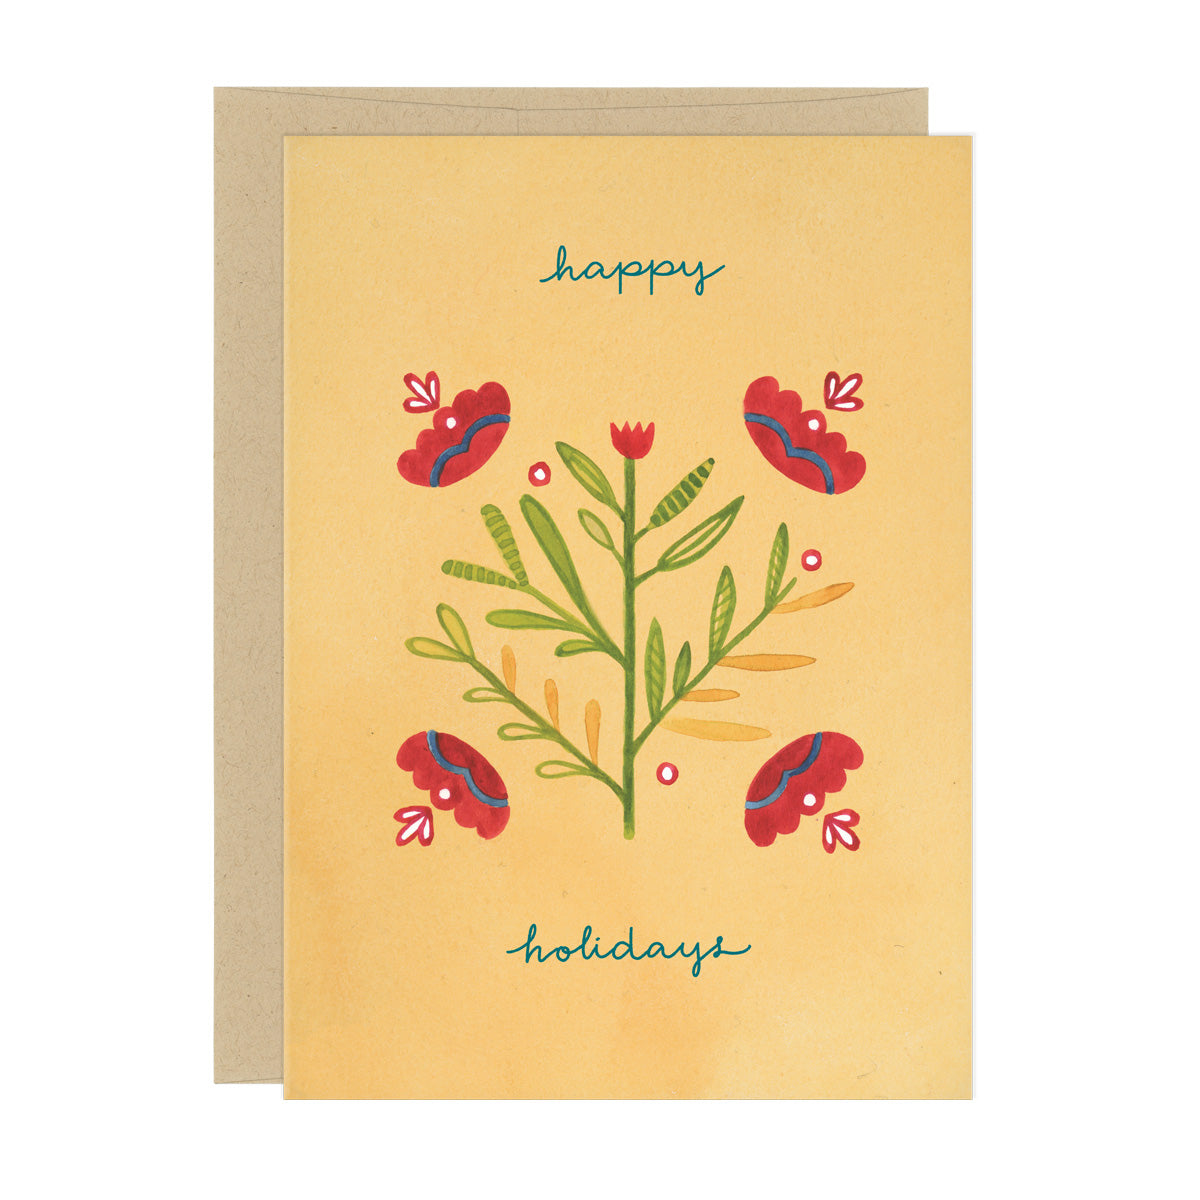 Decorative Floral Happy Holidays Card Wholesale